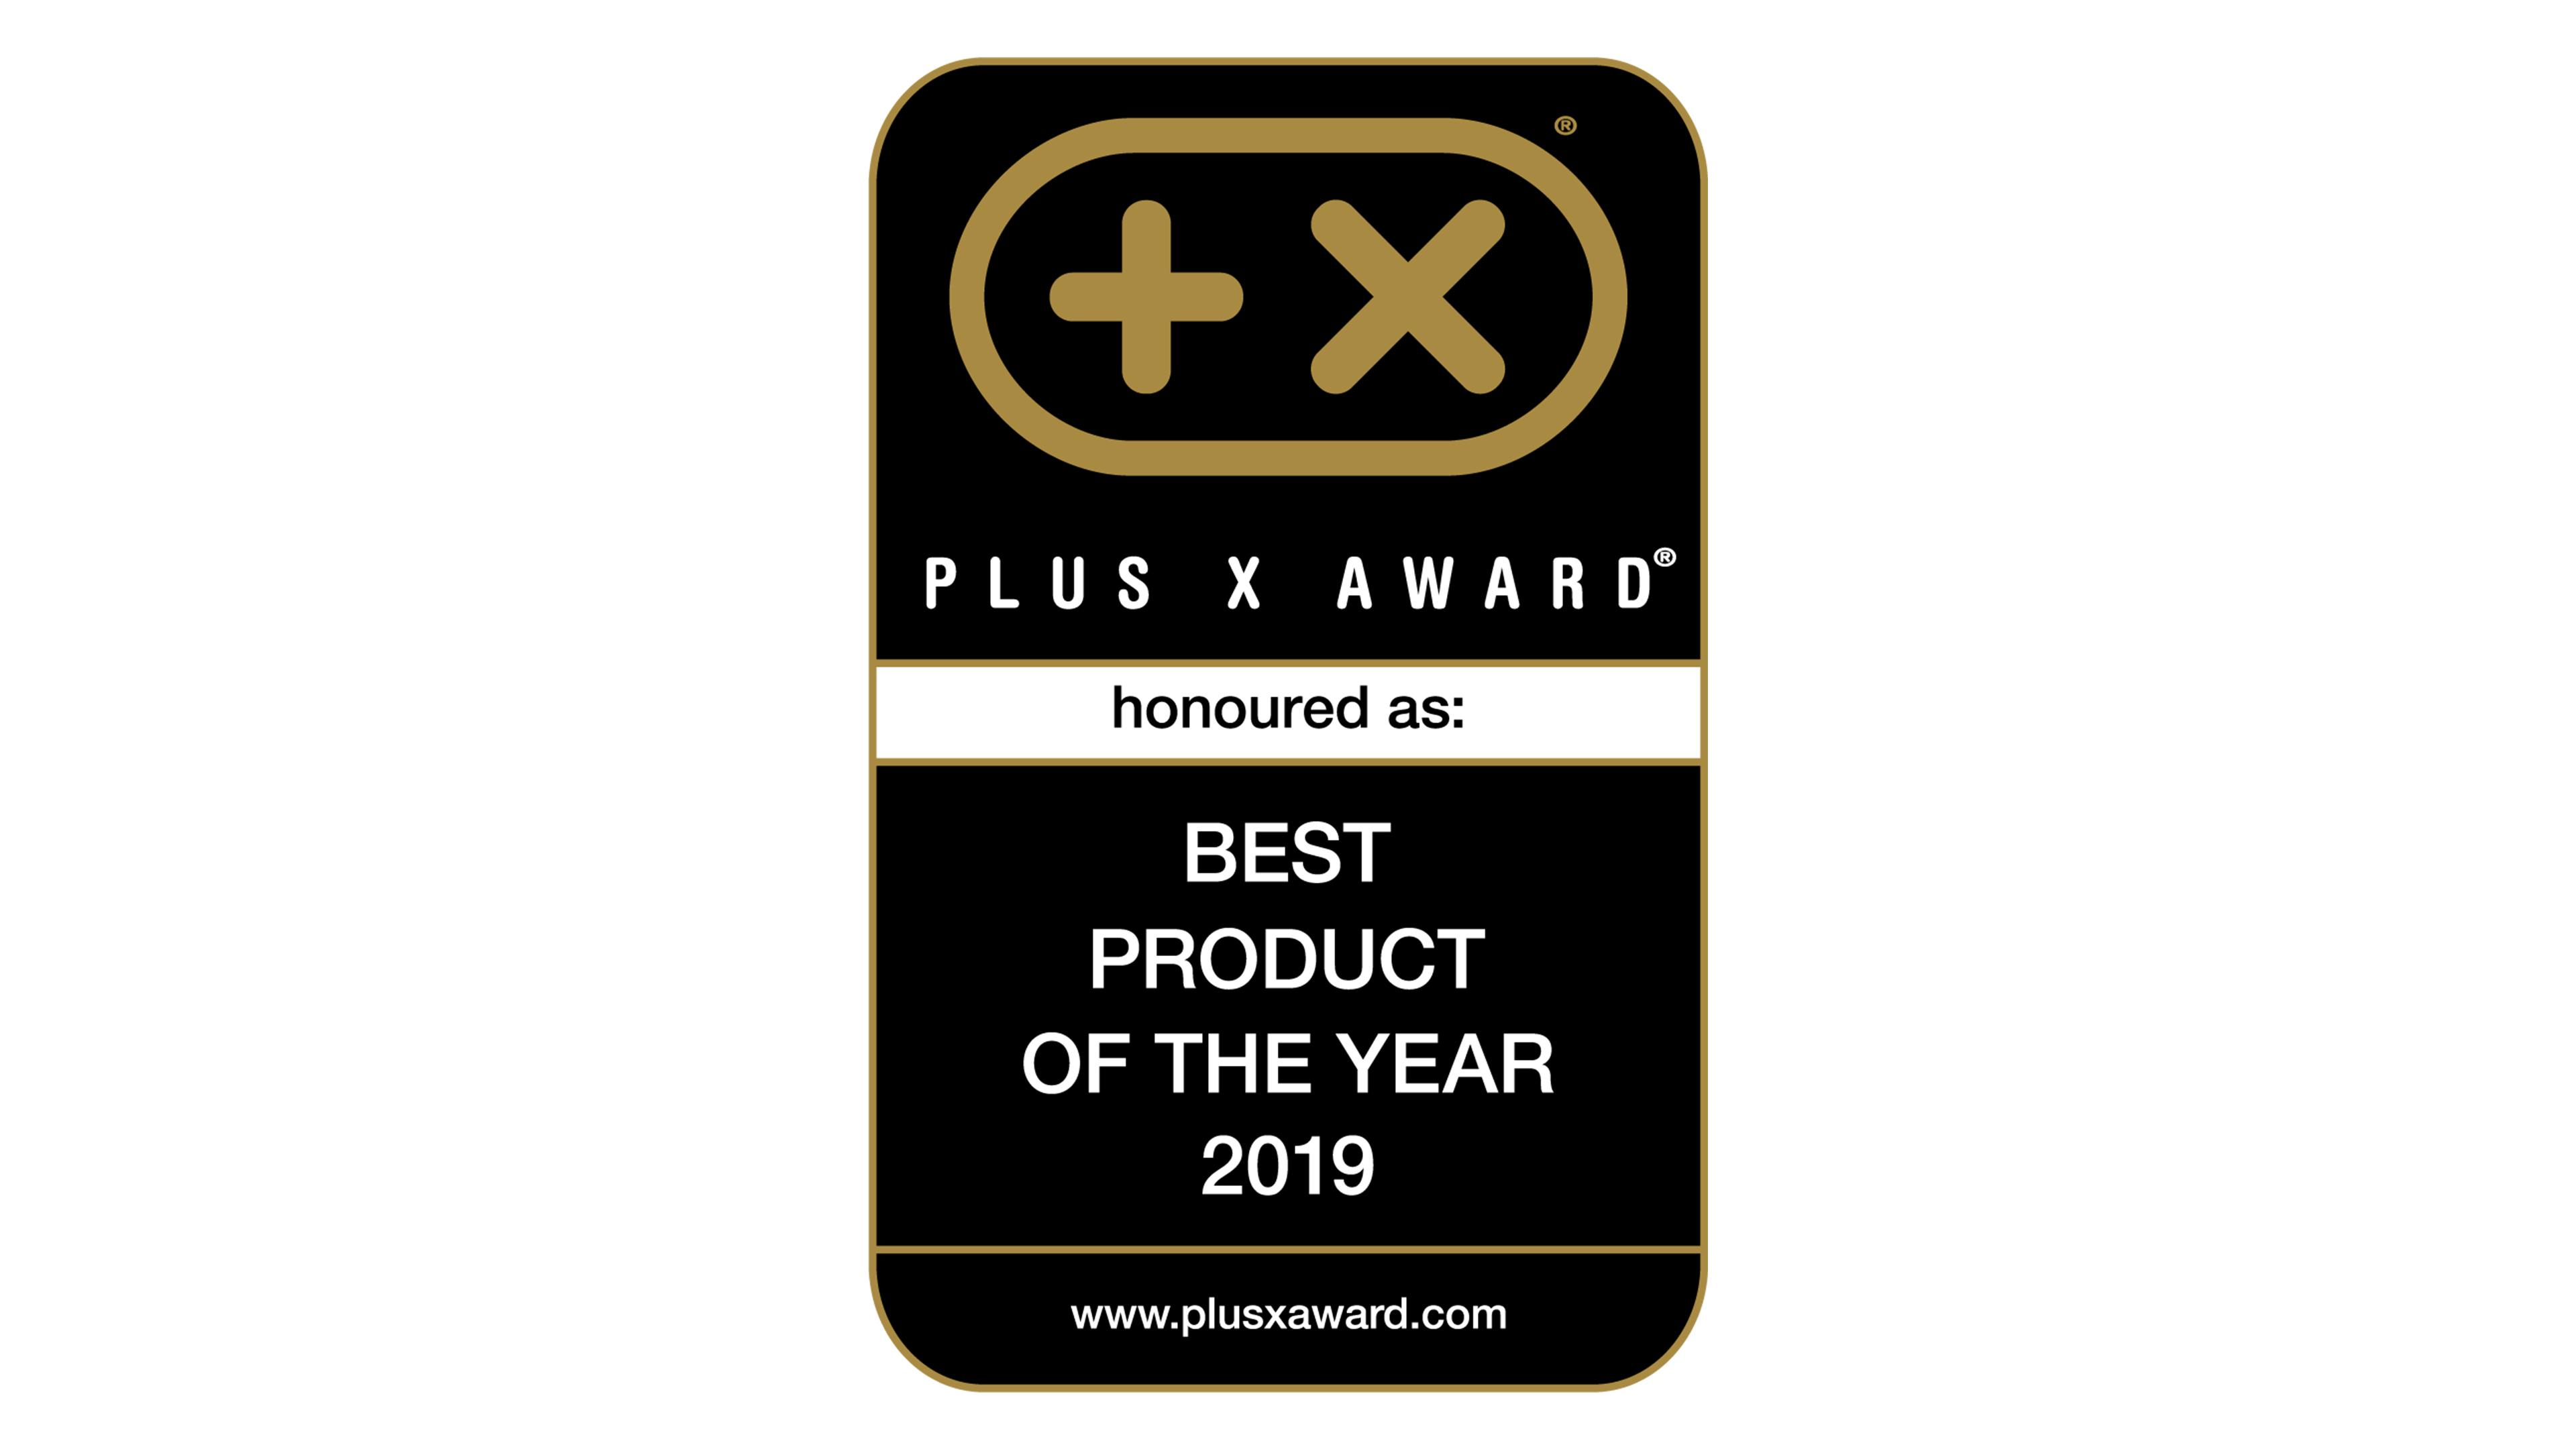 Award_pxa_best_product_of_the_year_2019.jpg